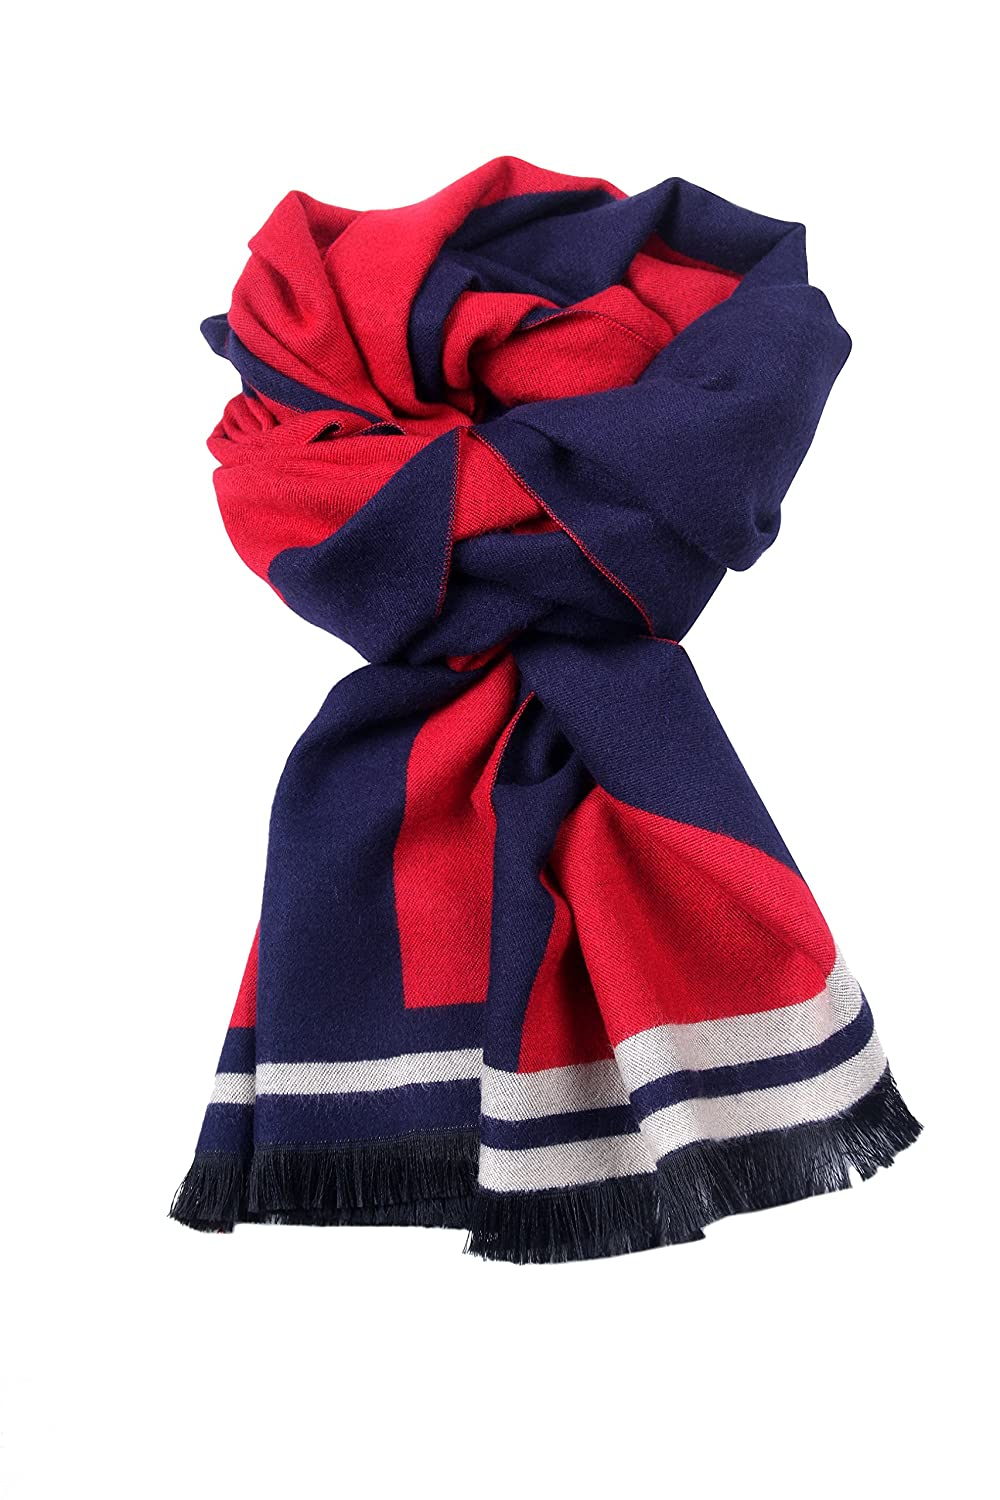 Runtlly Mens Classic Super Soft Luxurious Cashmere Feel Winter Scarf